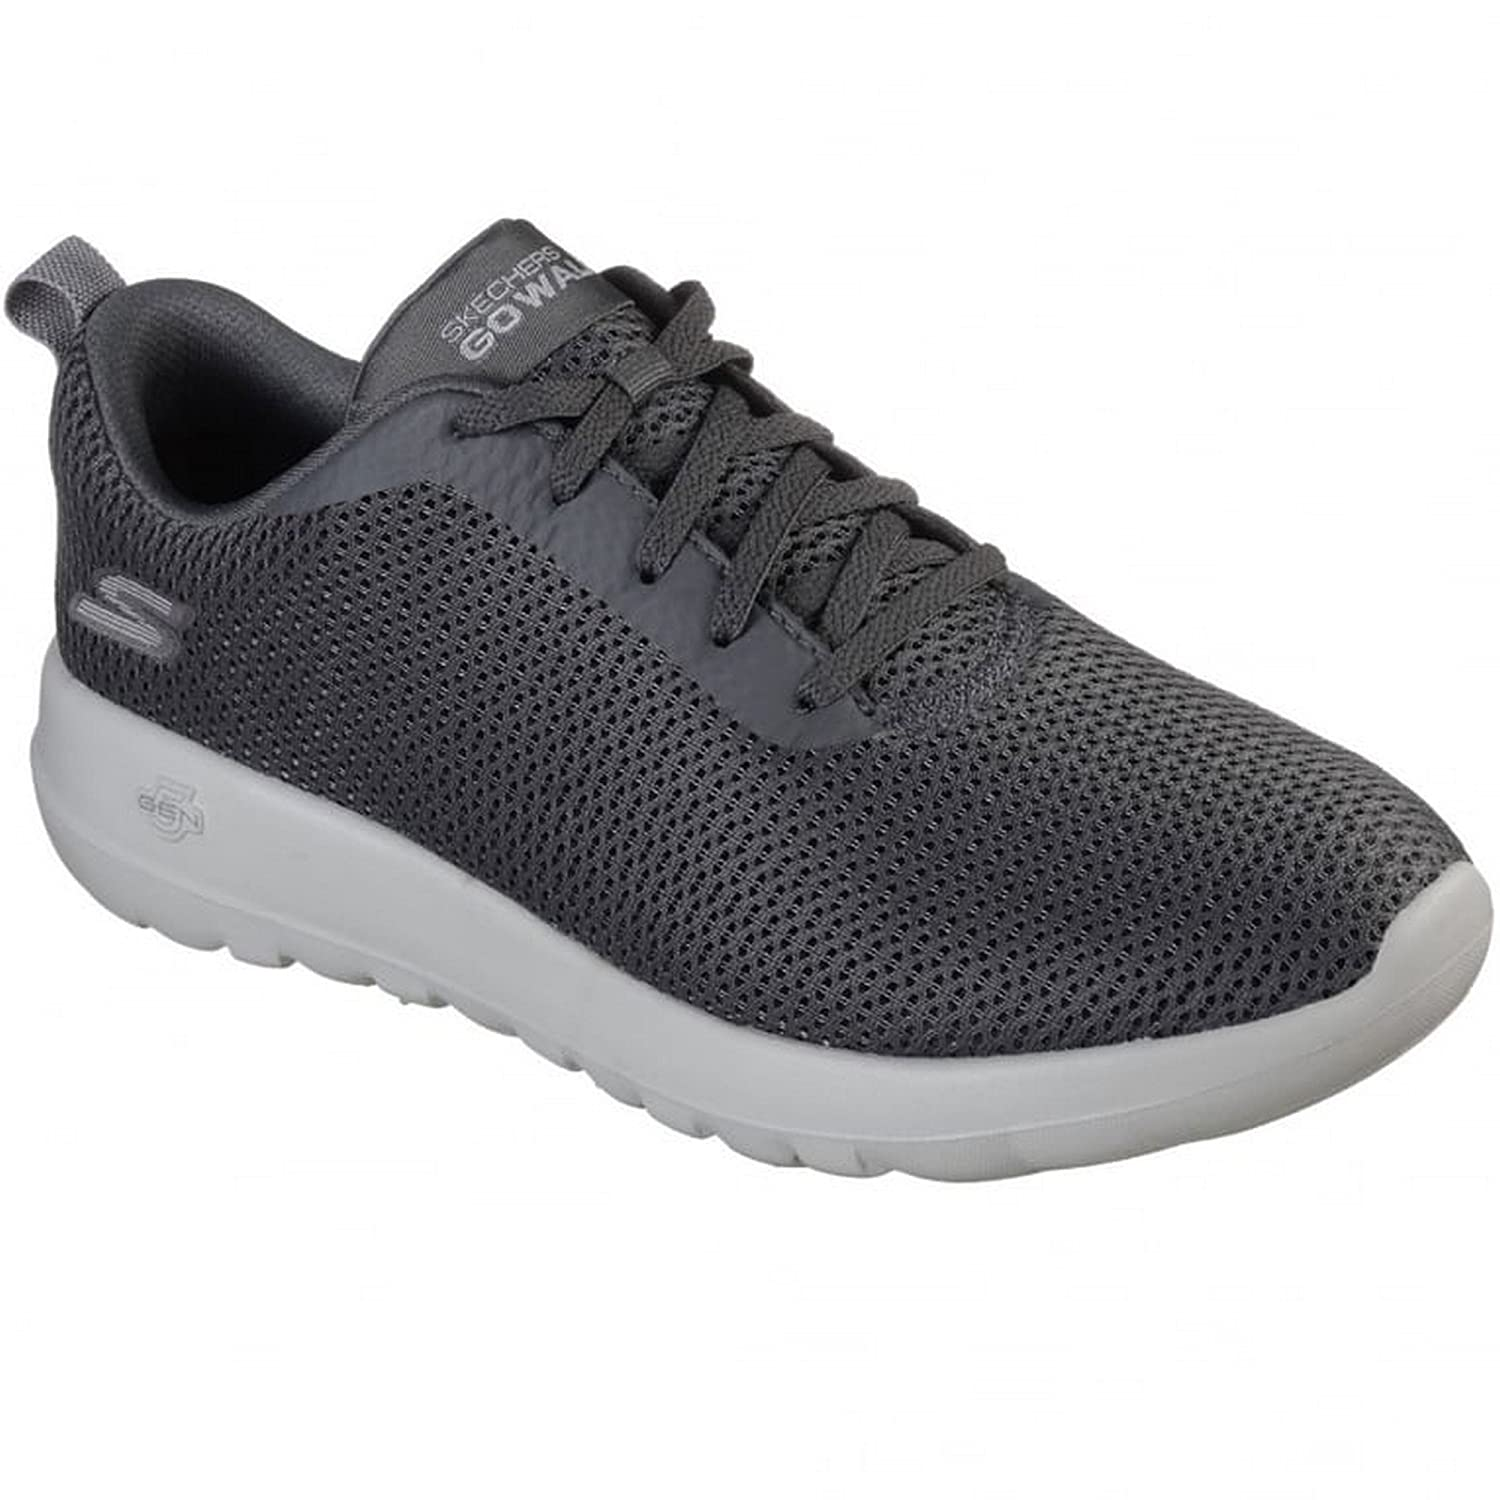 skechers sn 54601 Sale,up to 69% Discounts